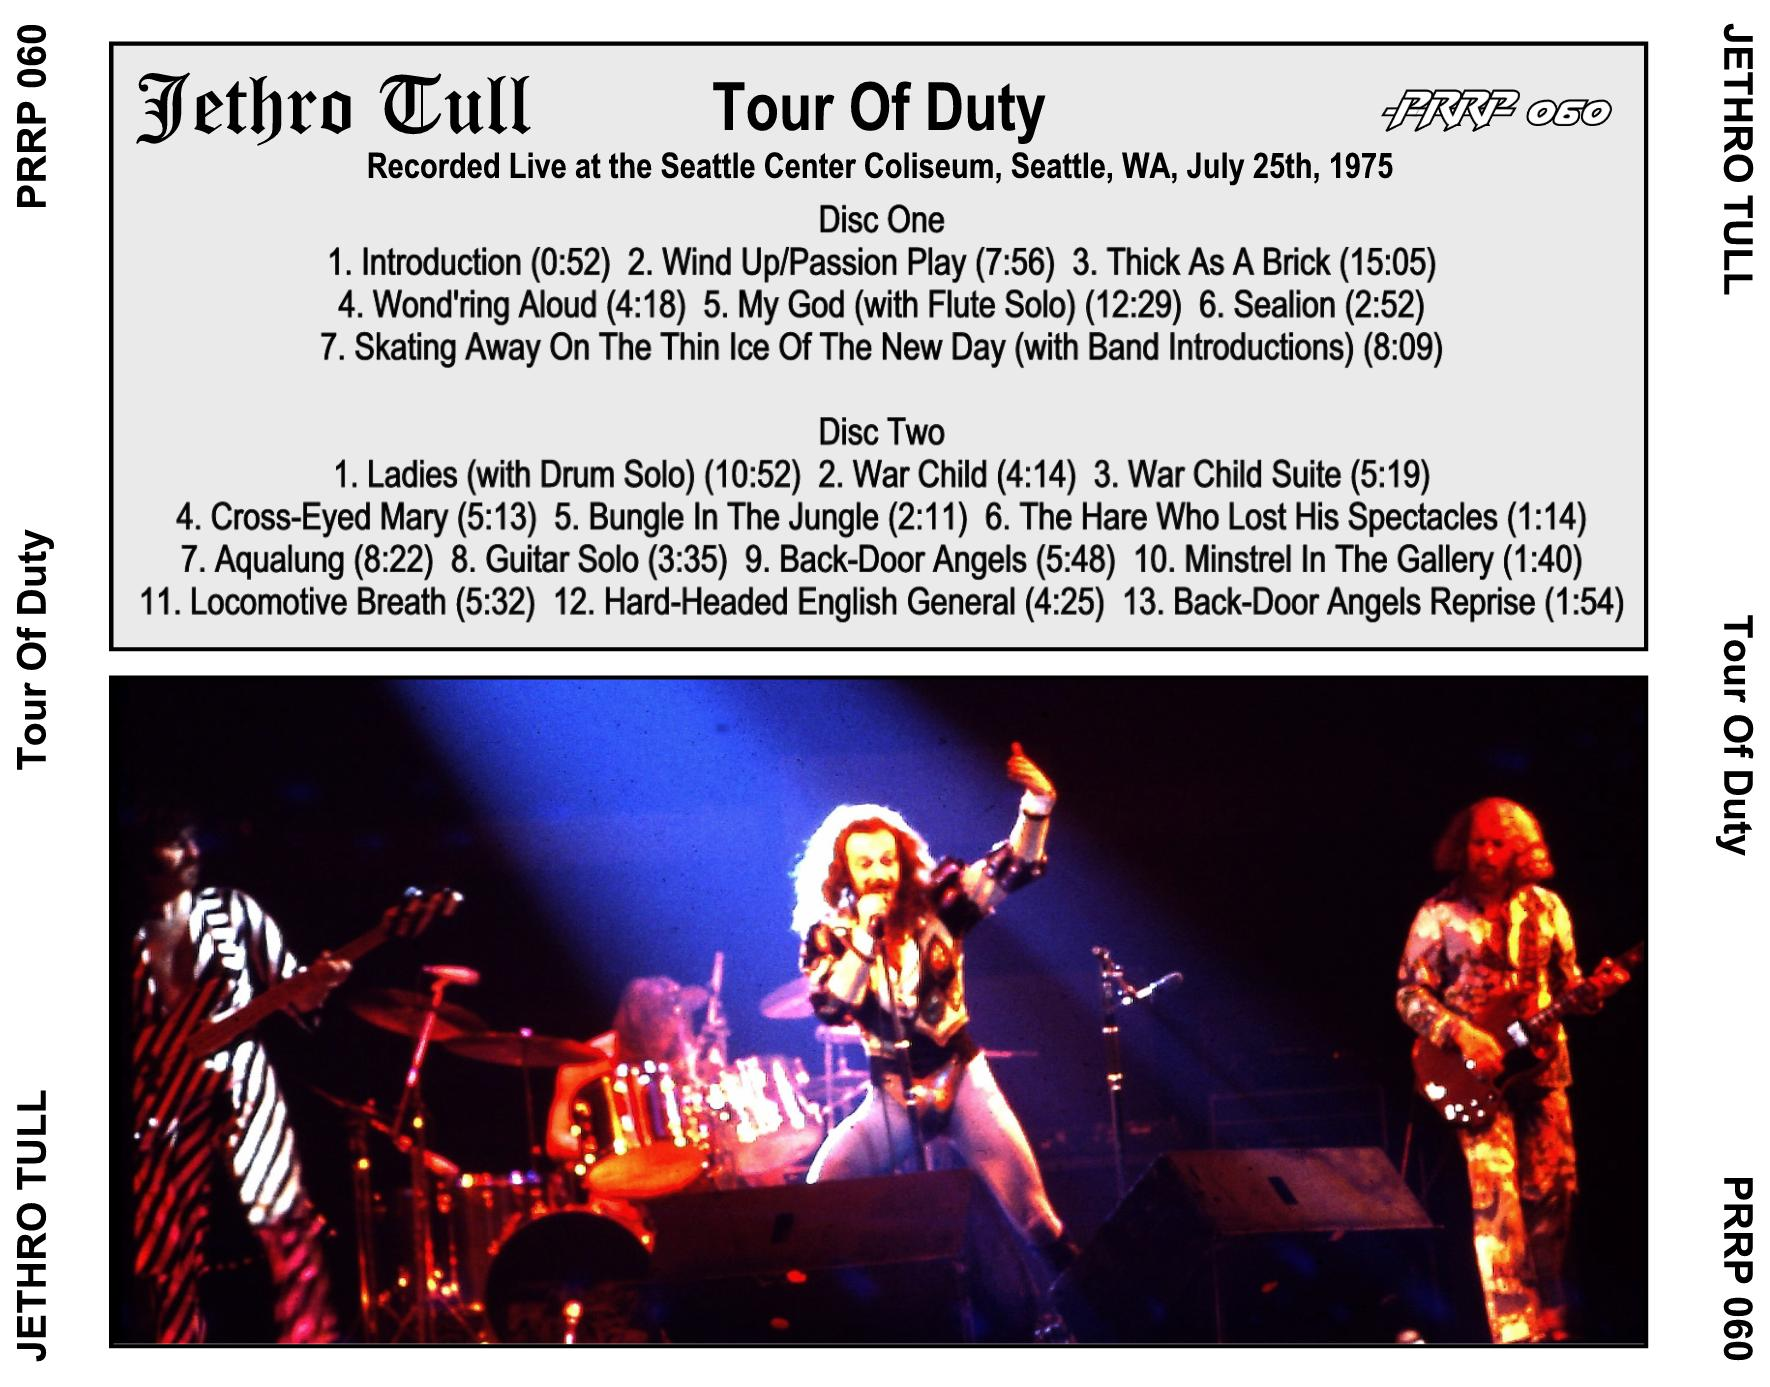 1975-07-25-tour_of_duty_prrp_060-back